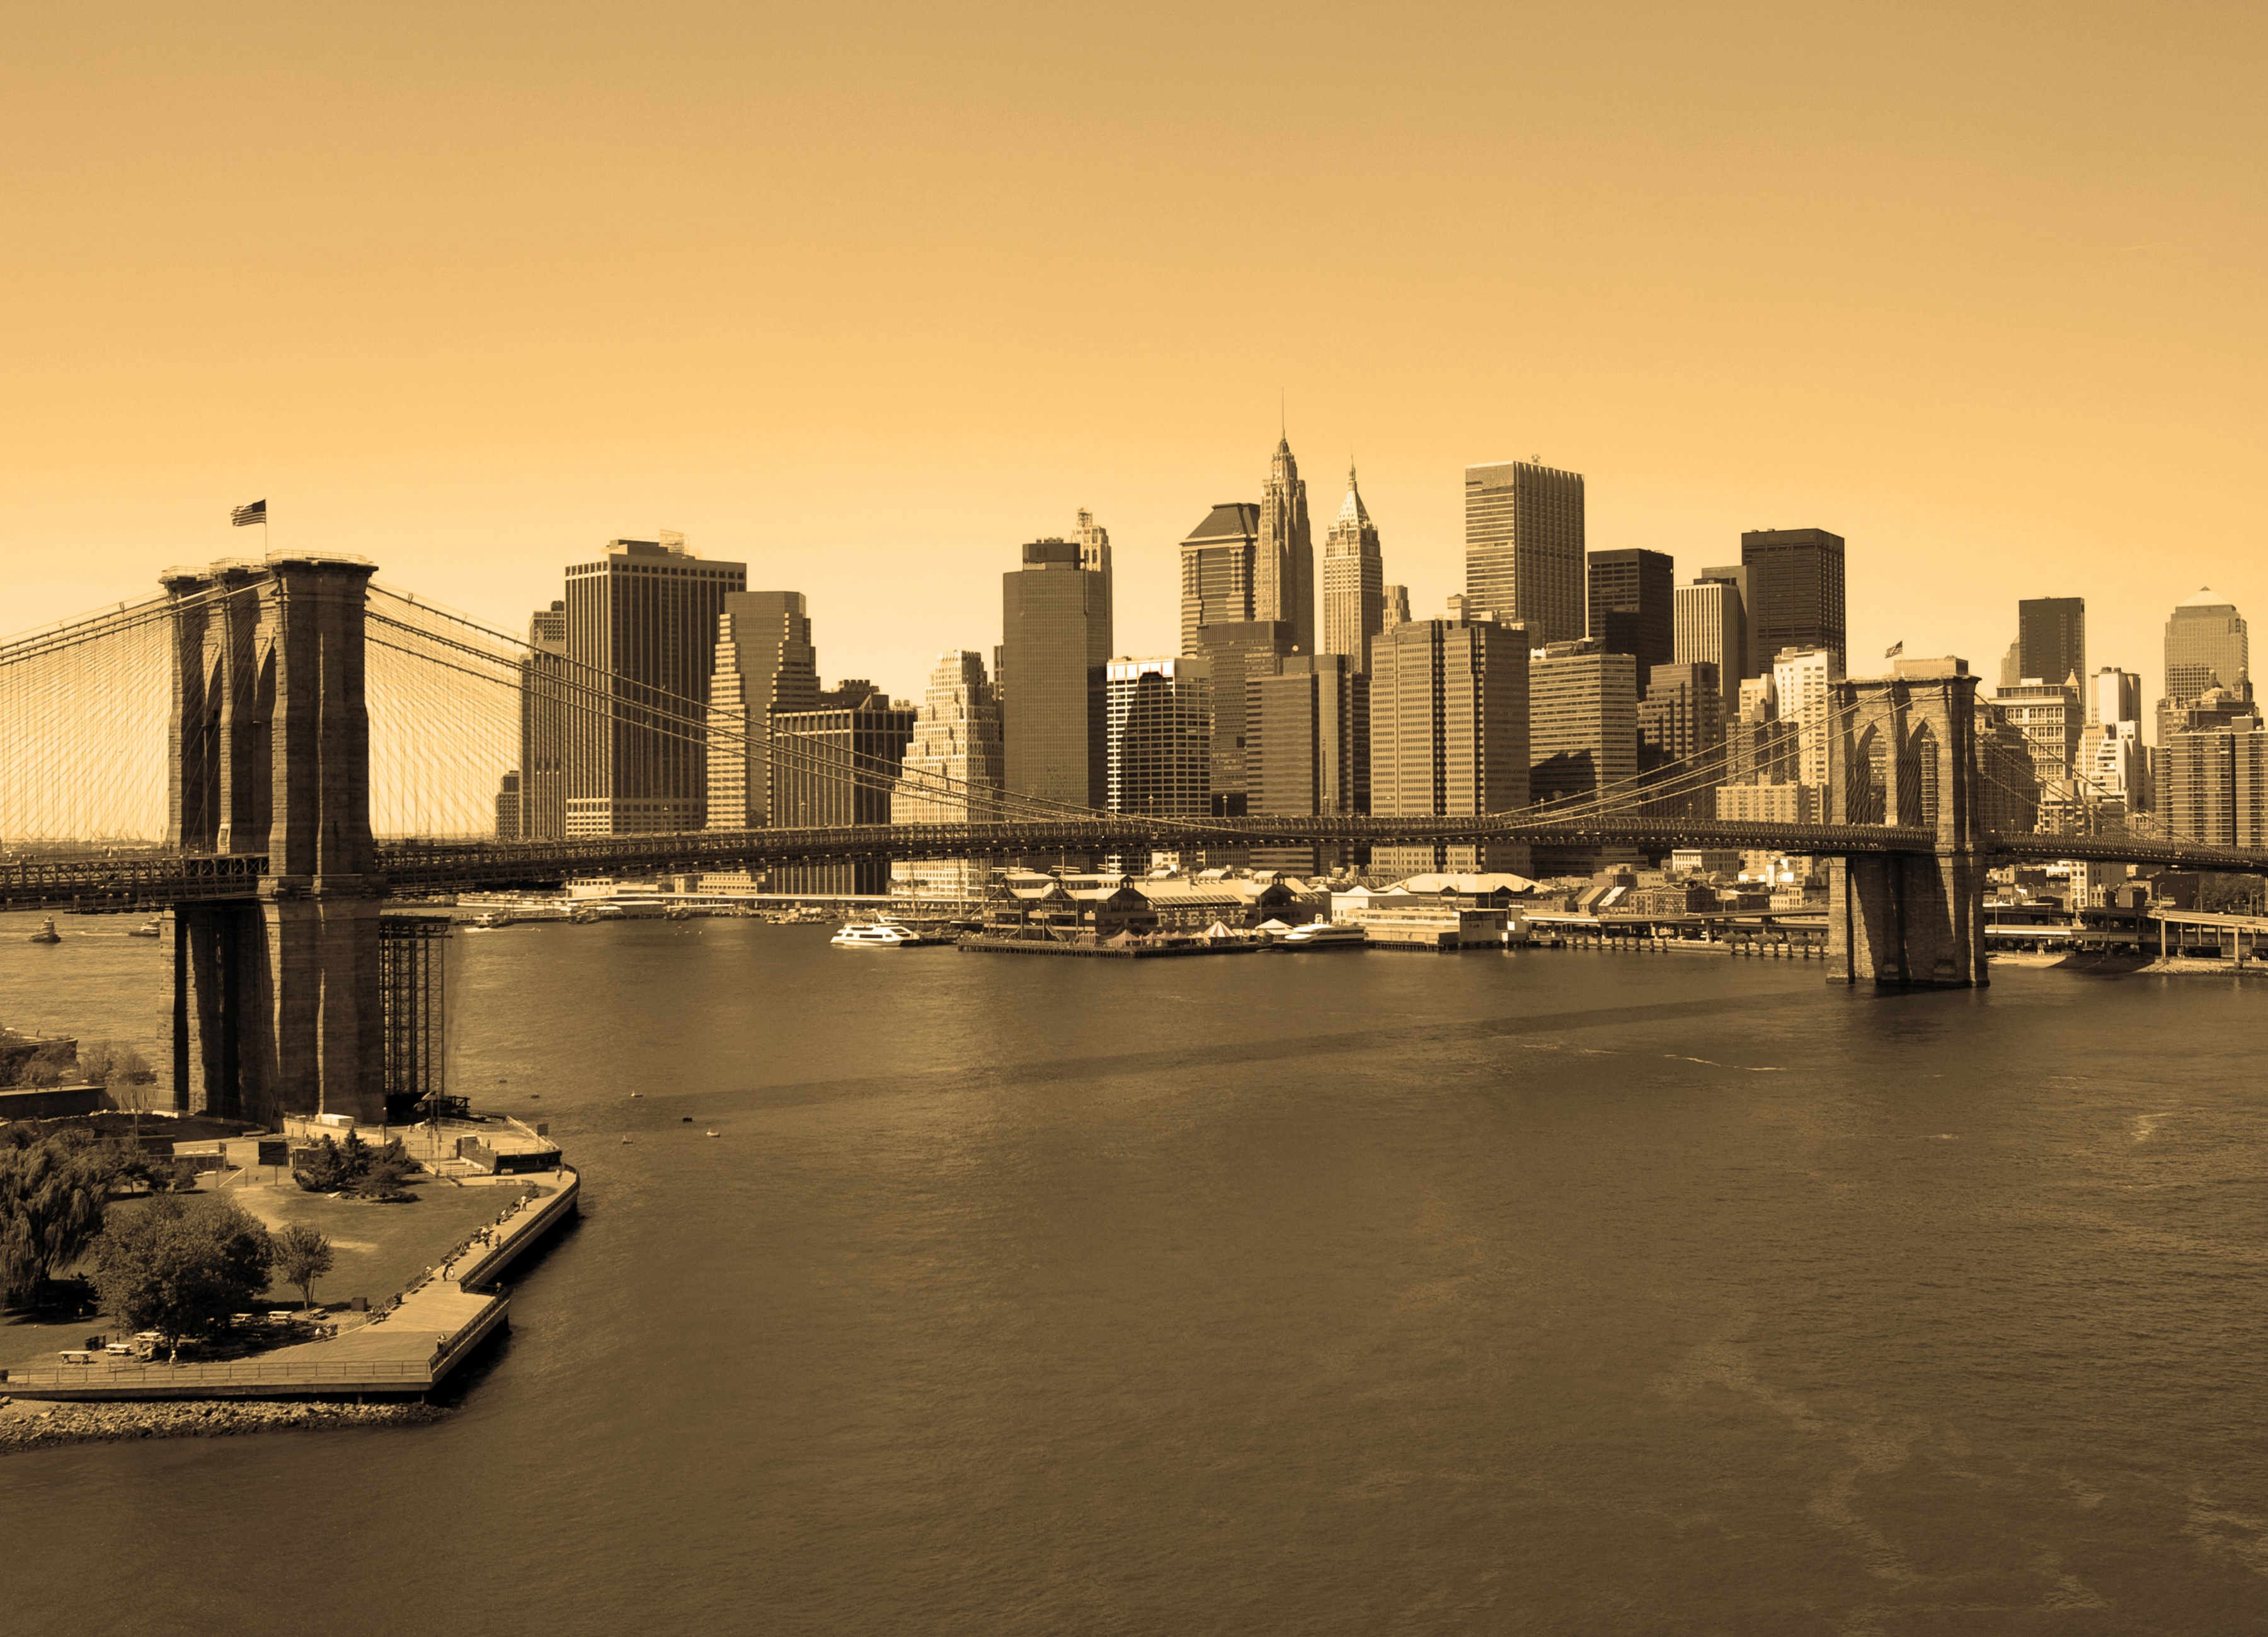 Fototapete »Brooklyn Bridge in Sepia« günstig online kaufen